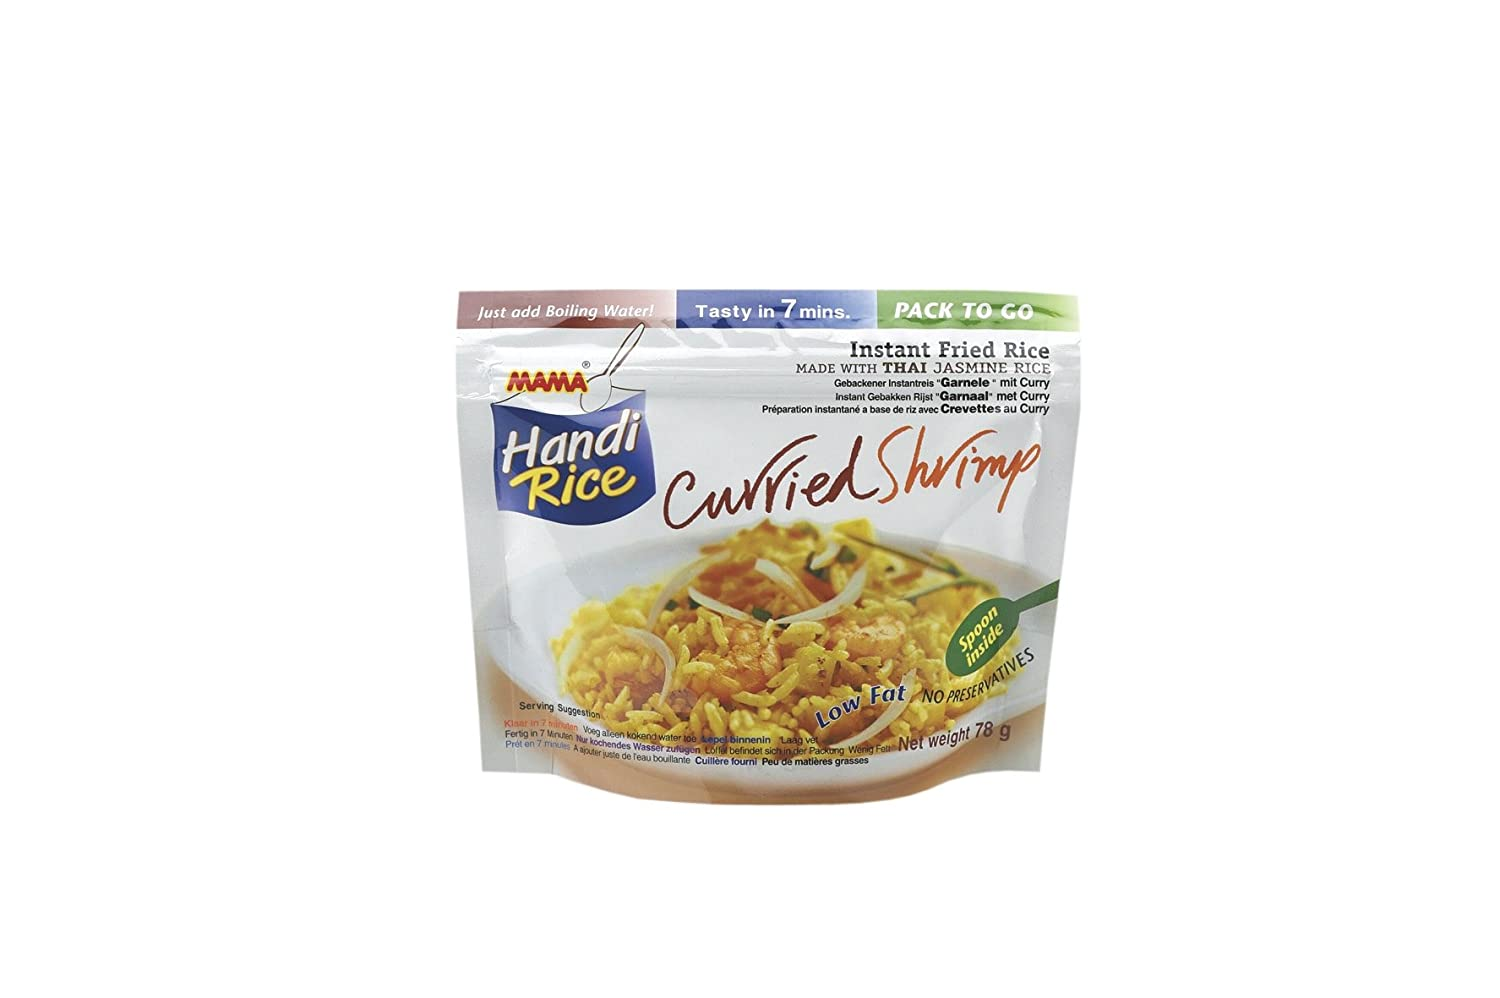 Mama - Handi Rice - Thai Curried Shrimp - 80g: Amazon.de ...